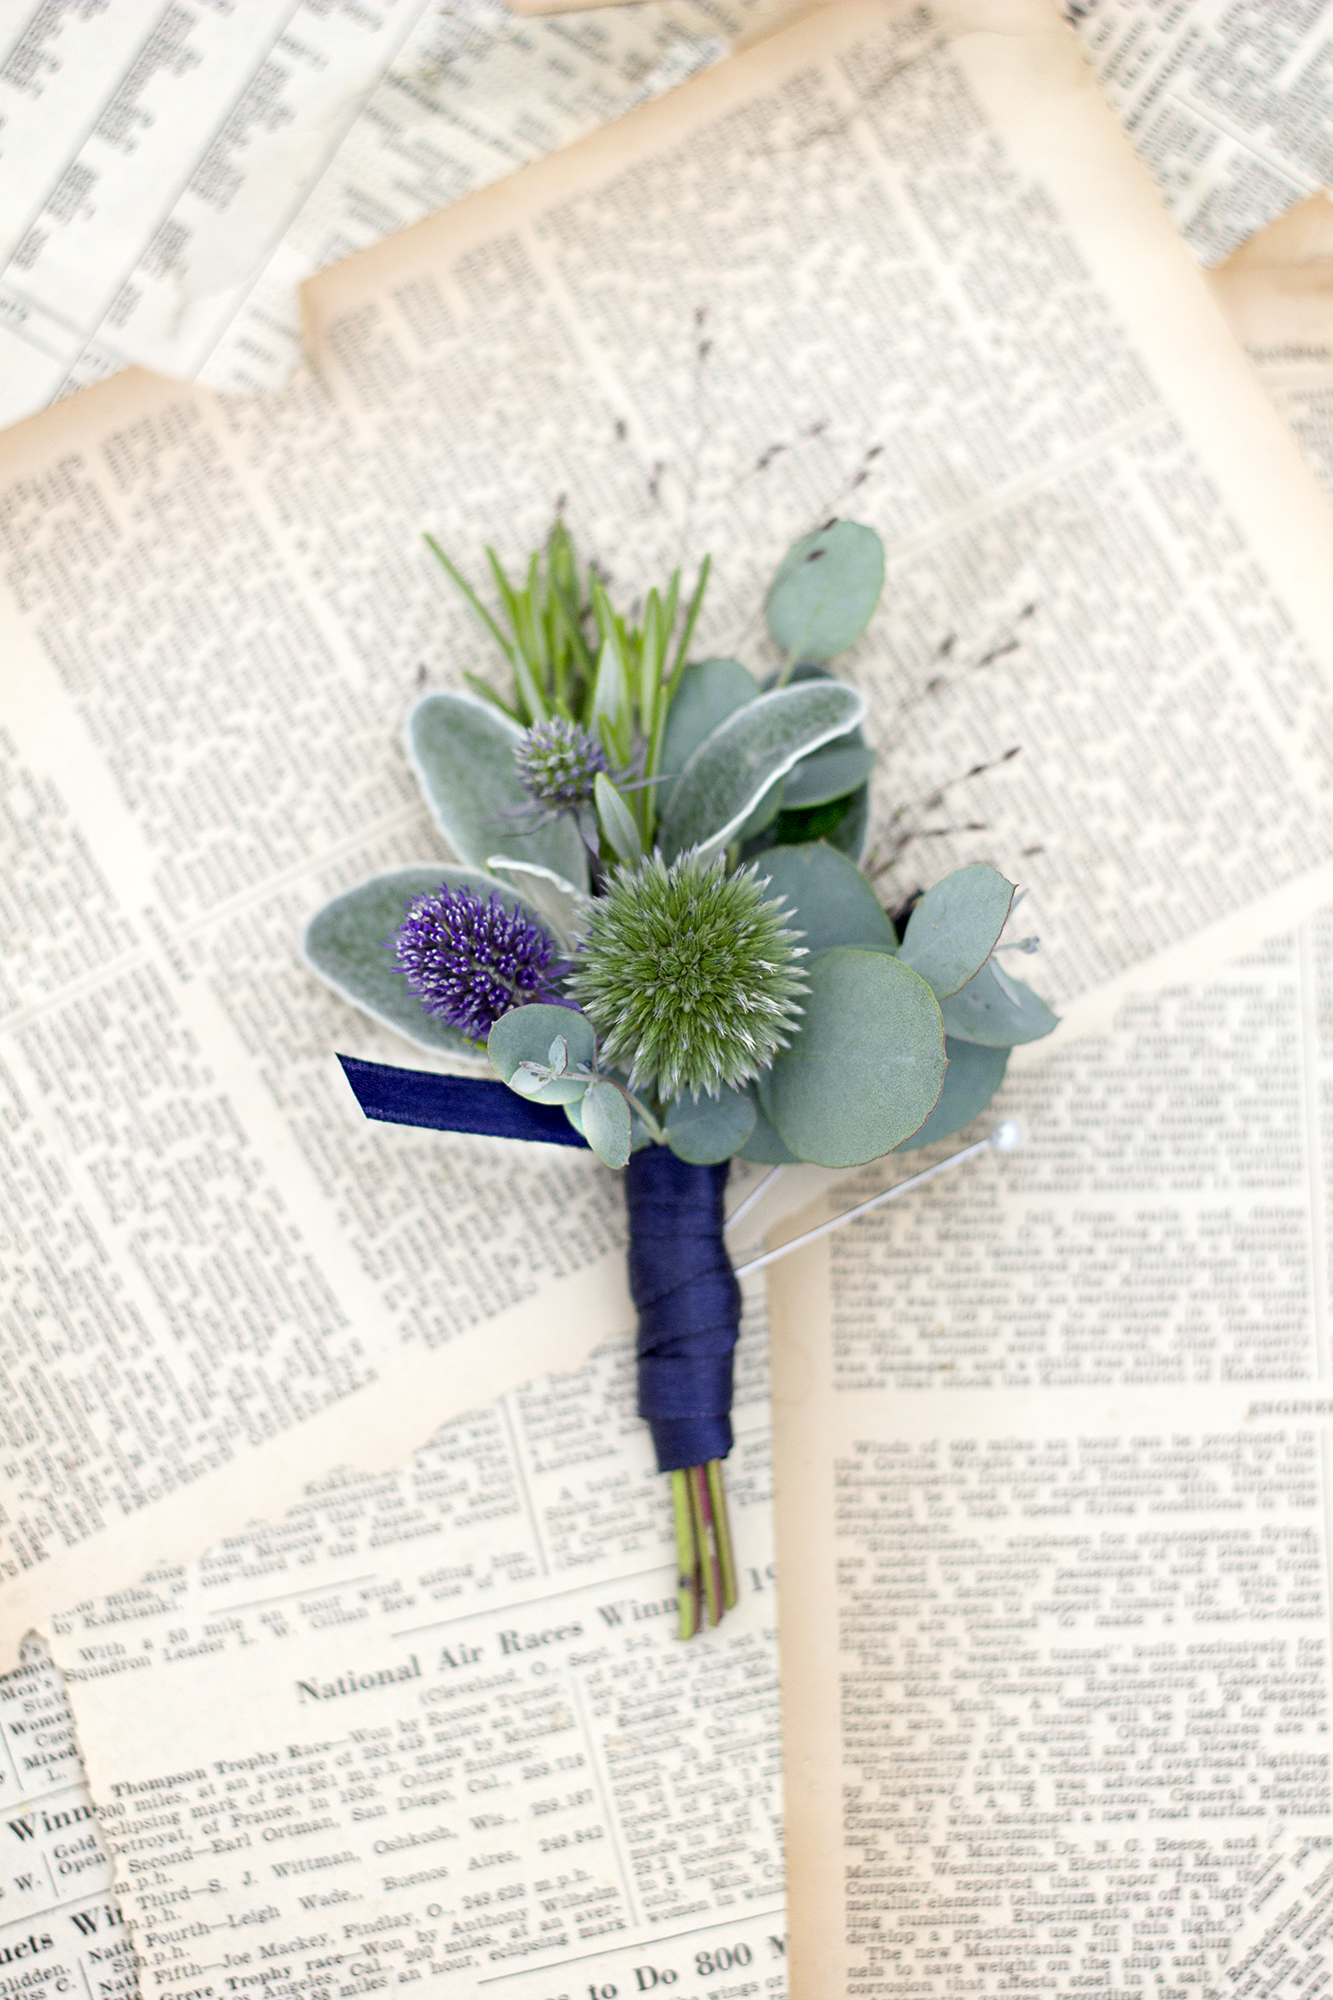 reduced_ss_echinops_sea_holly_frosted_explosion_grass_homecoming.jpg